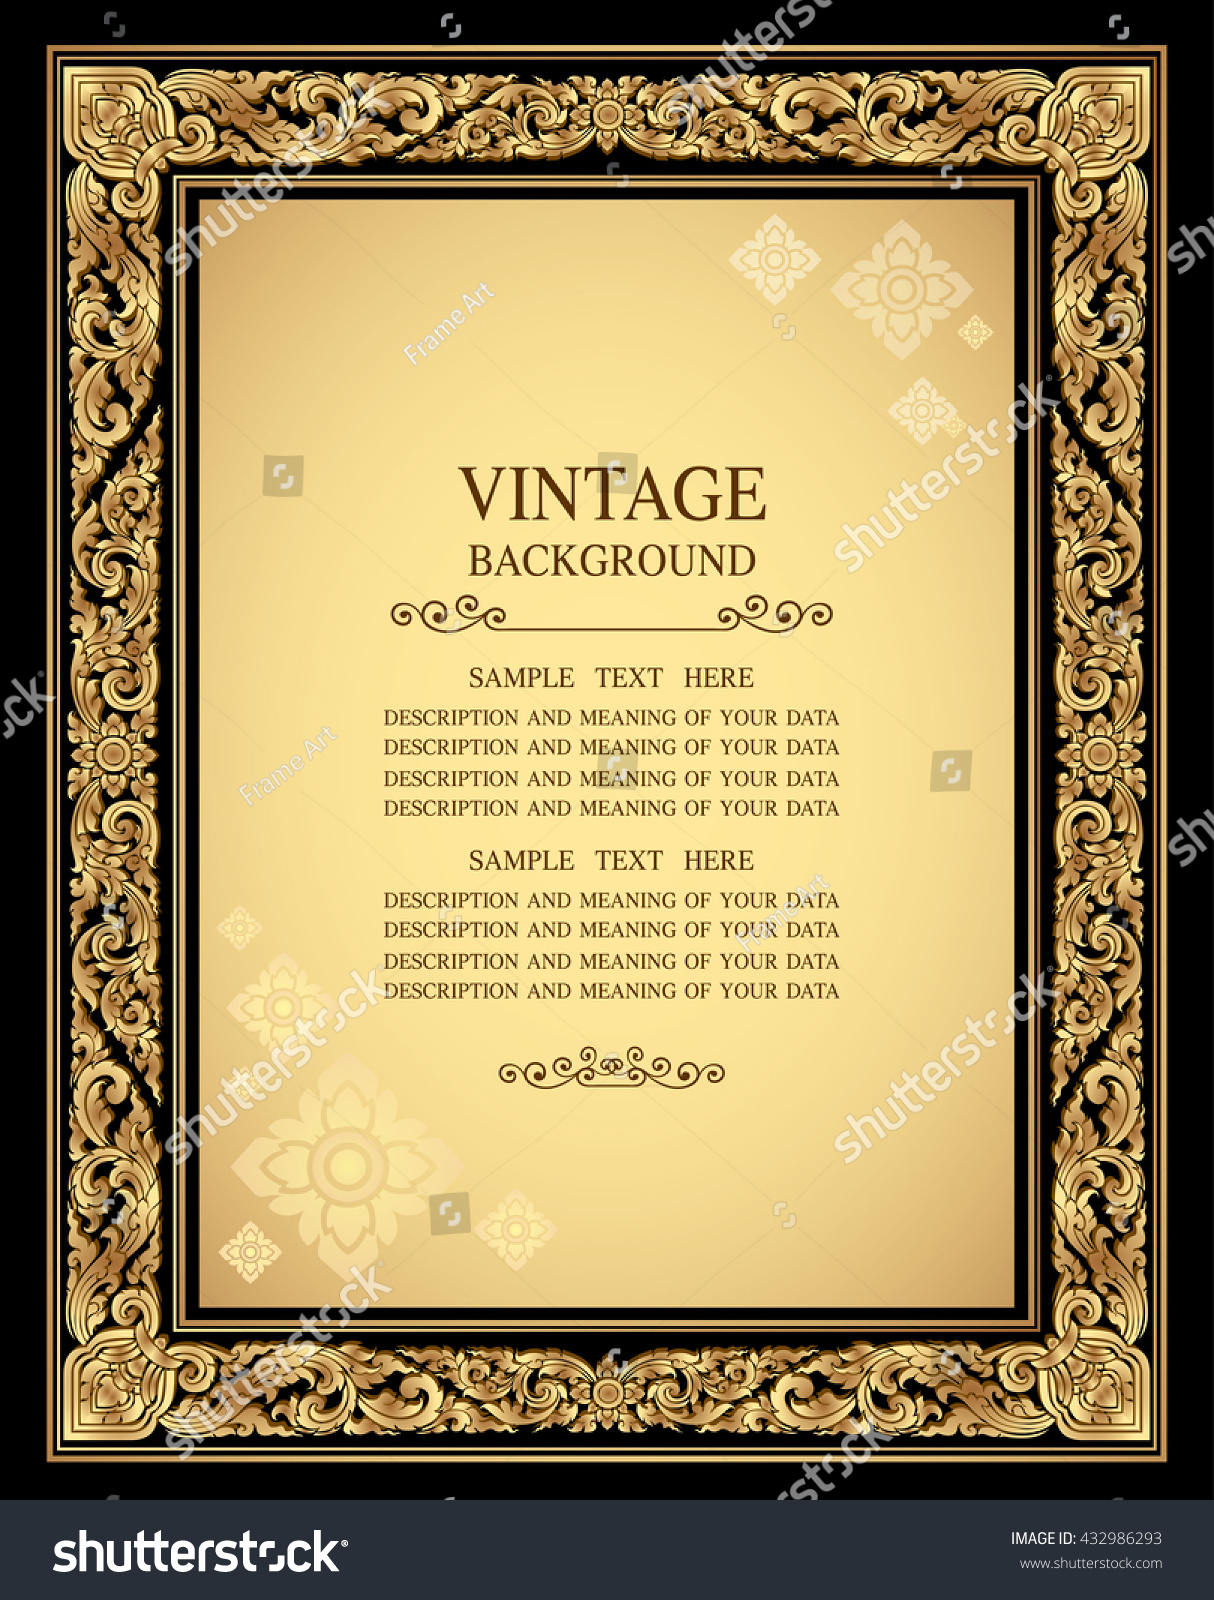 Beautiful Background For Book Cover : Royalty free vintage gold background antique style